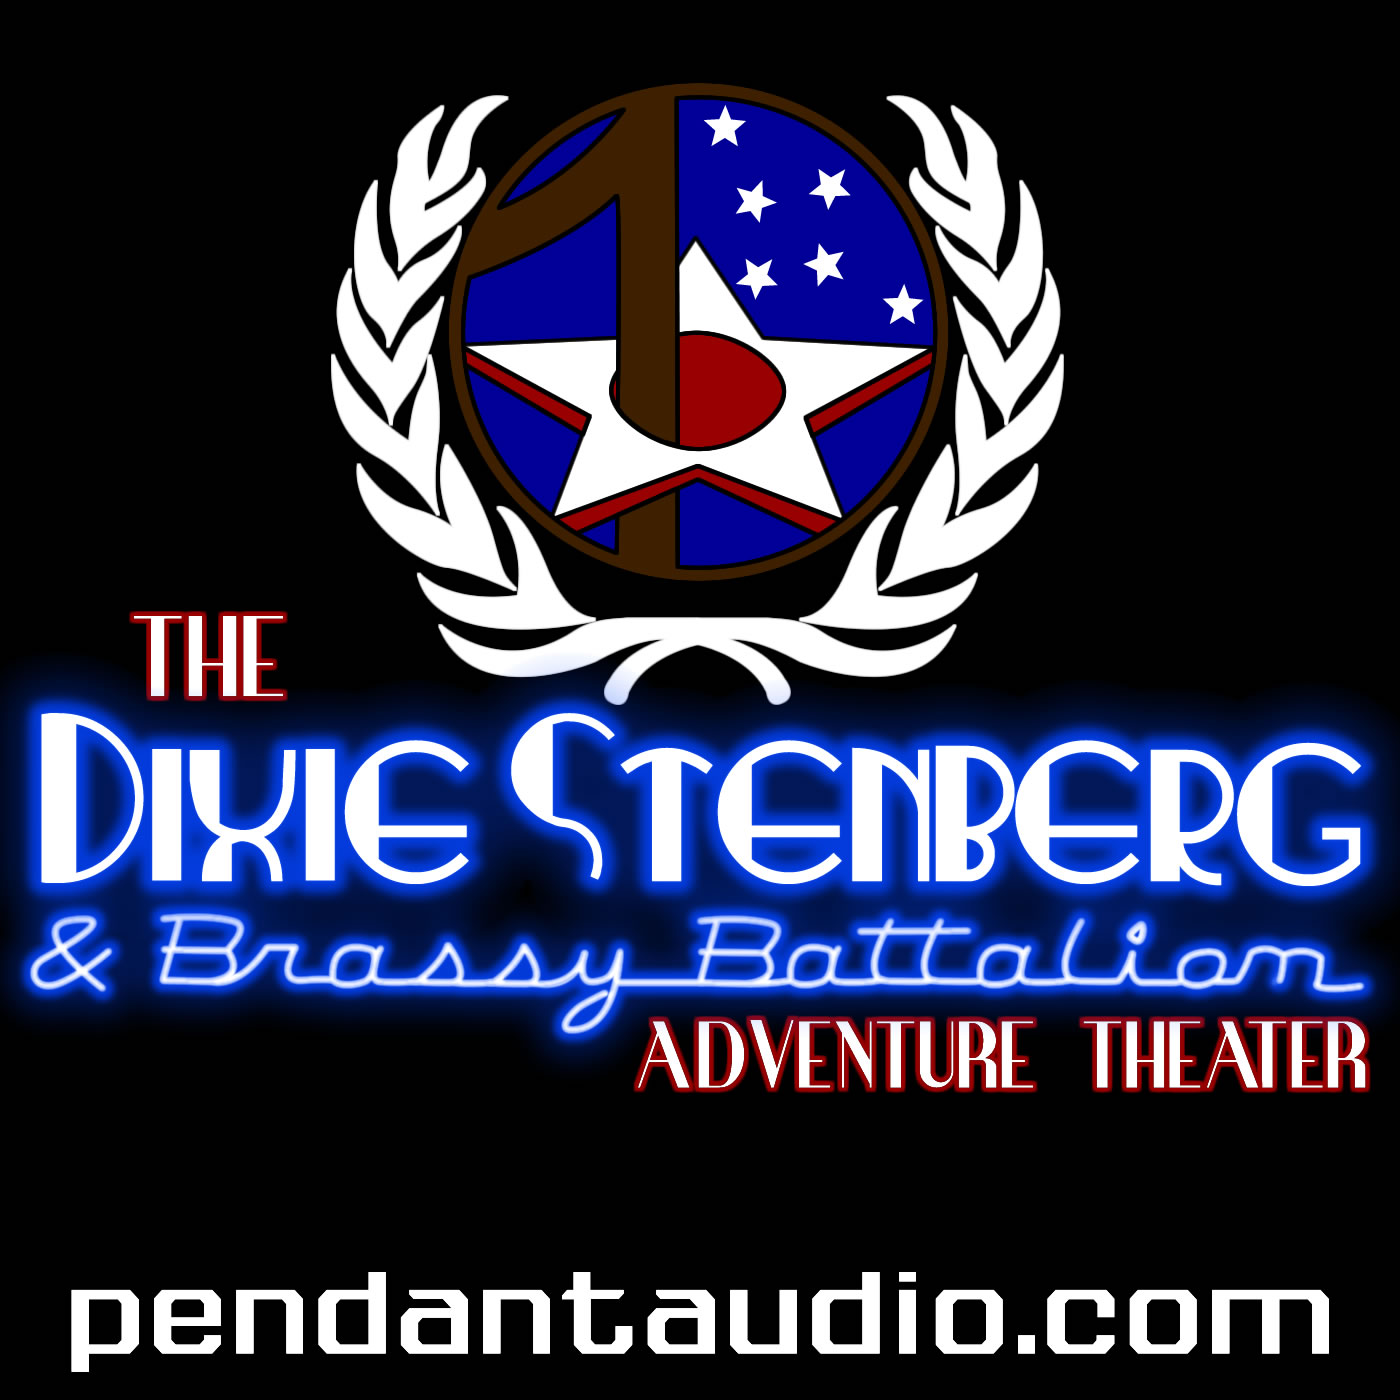 The Dixie Stenberg and Brassy Battalion Adventure Theater by Pendant Productions